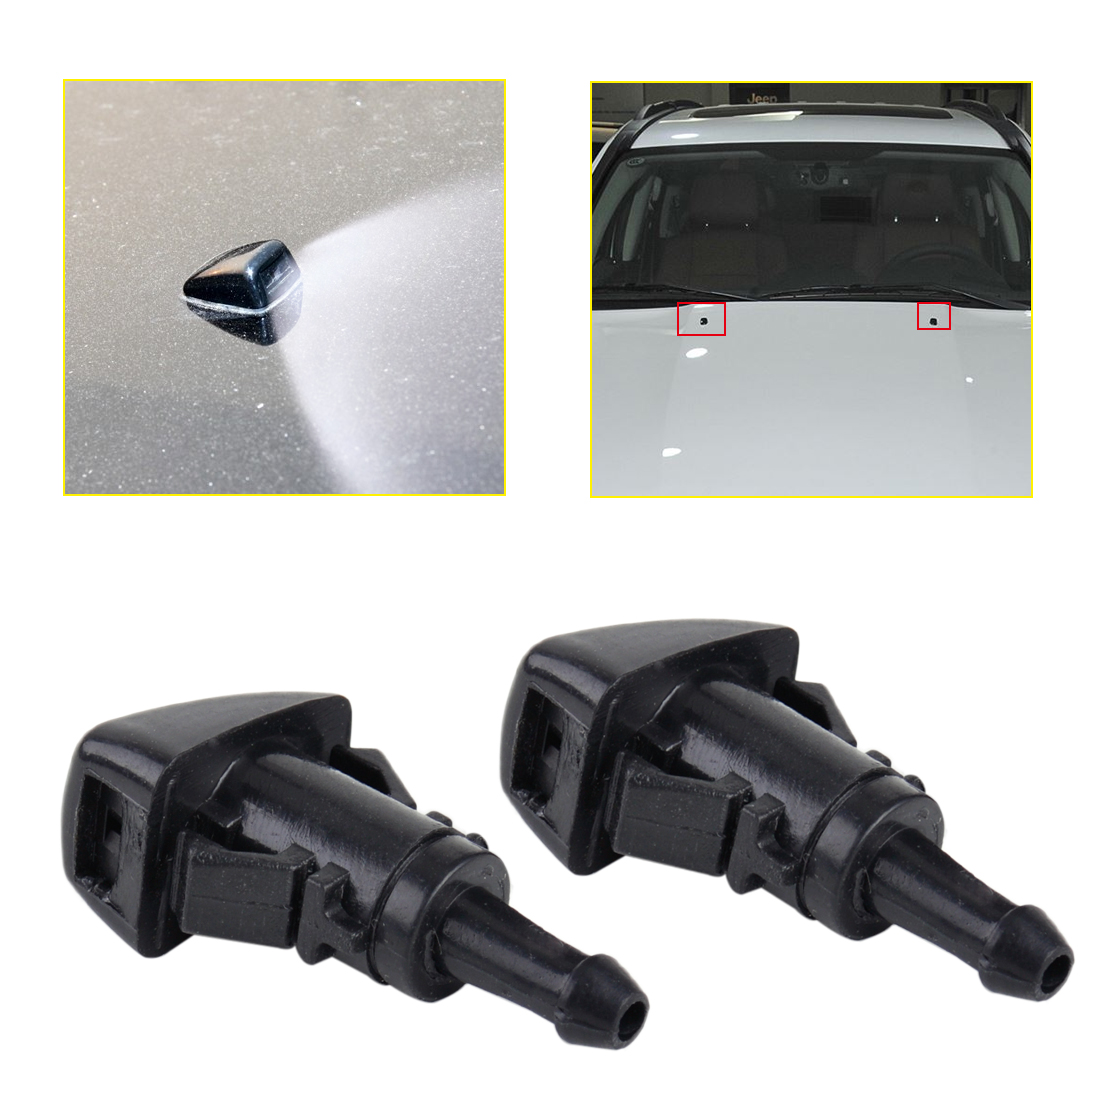 DWCX 2Pcs 1 Hole Car Windshield Washer Wiper Water Spray Nozzle 47186 Fit For Chrysler 300 Dodge Avenger Jeep Compass Ram 1500